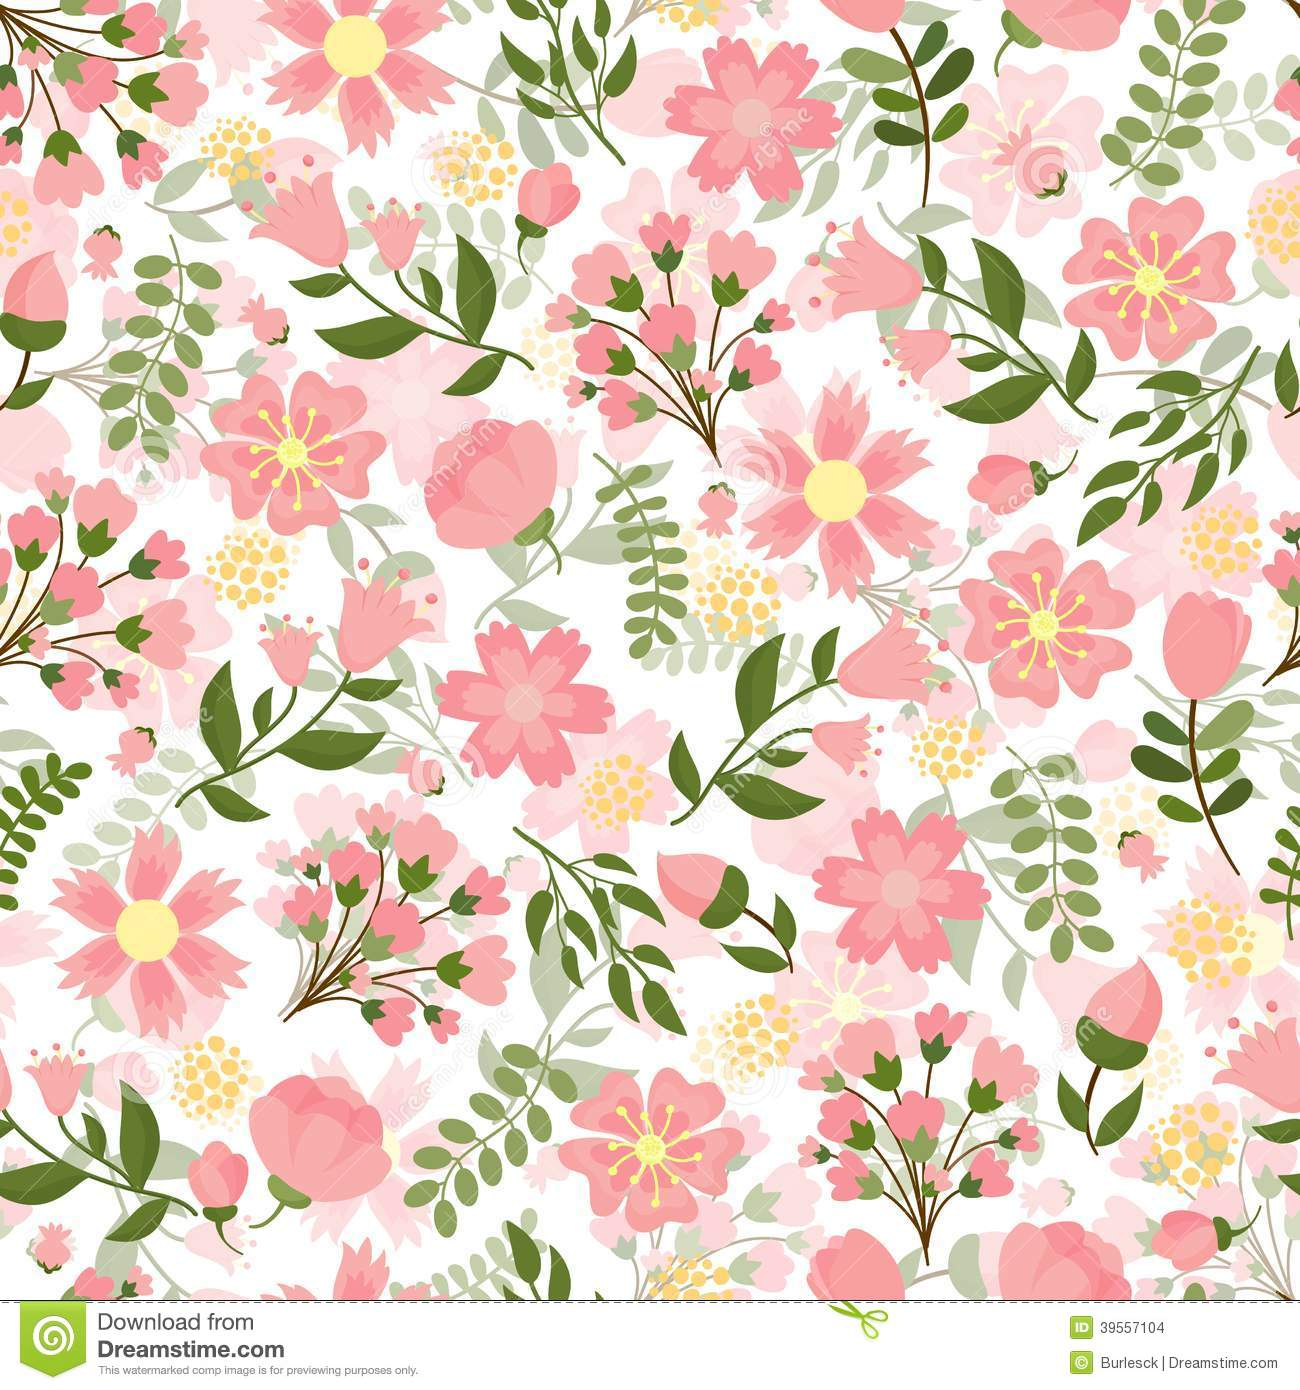 Spring Green Leaves And Flowers Background With Plants: Seamless Spring Floral Background Stock Vector